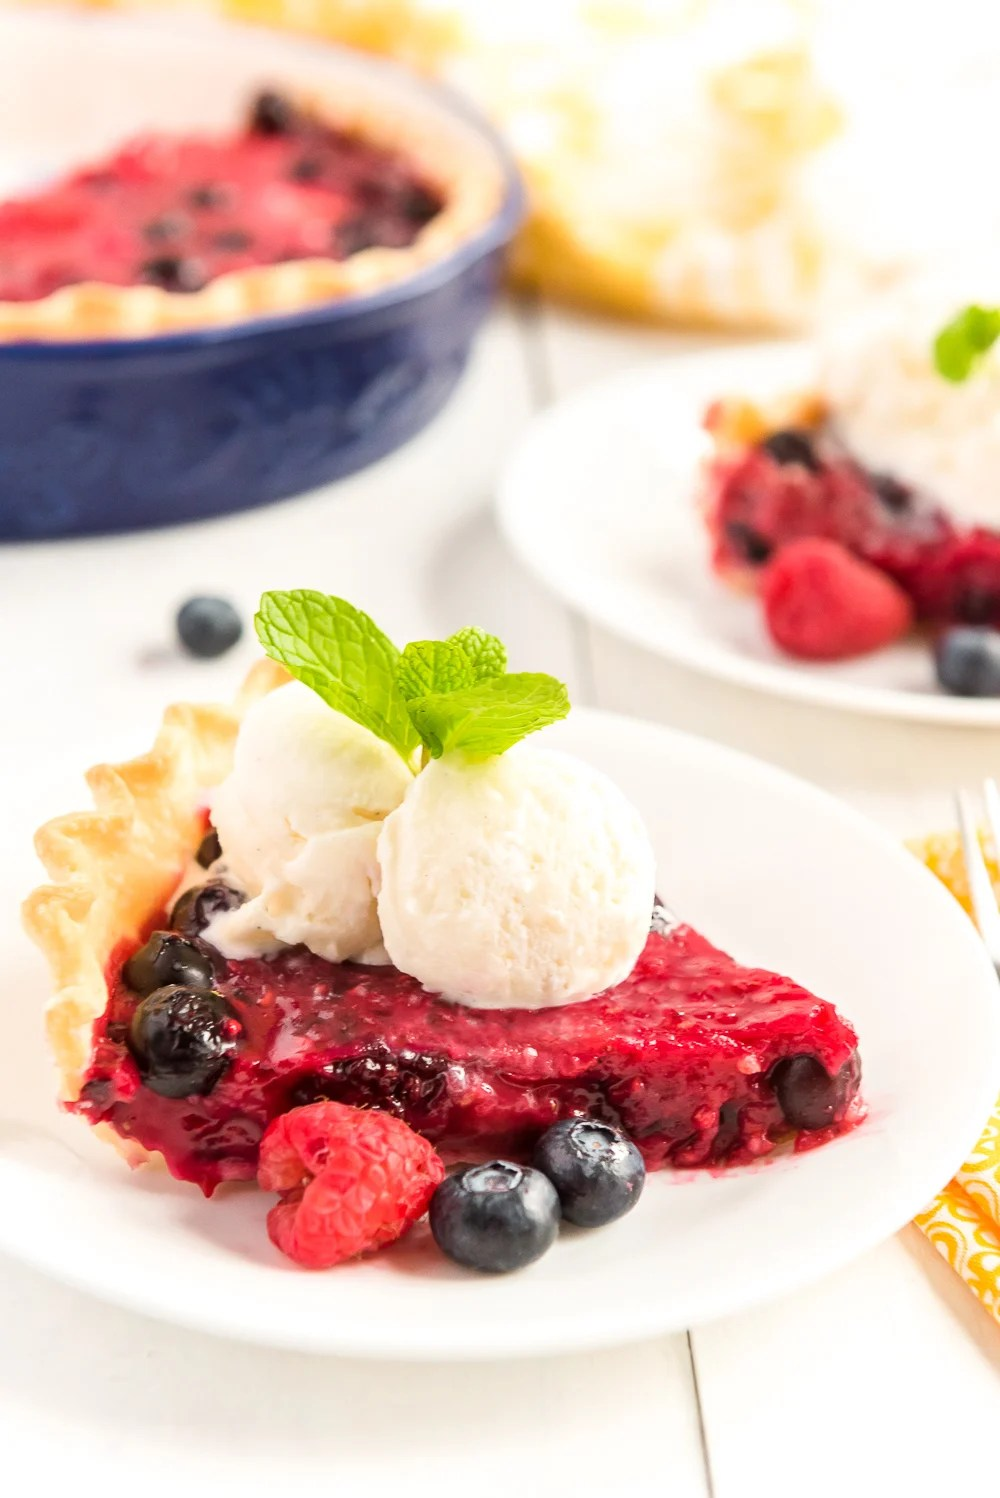 Slice of Mixed Berry Pie on a white plates with fresh berries, vanilla ice cream on top, and a sprig of mint.